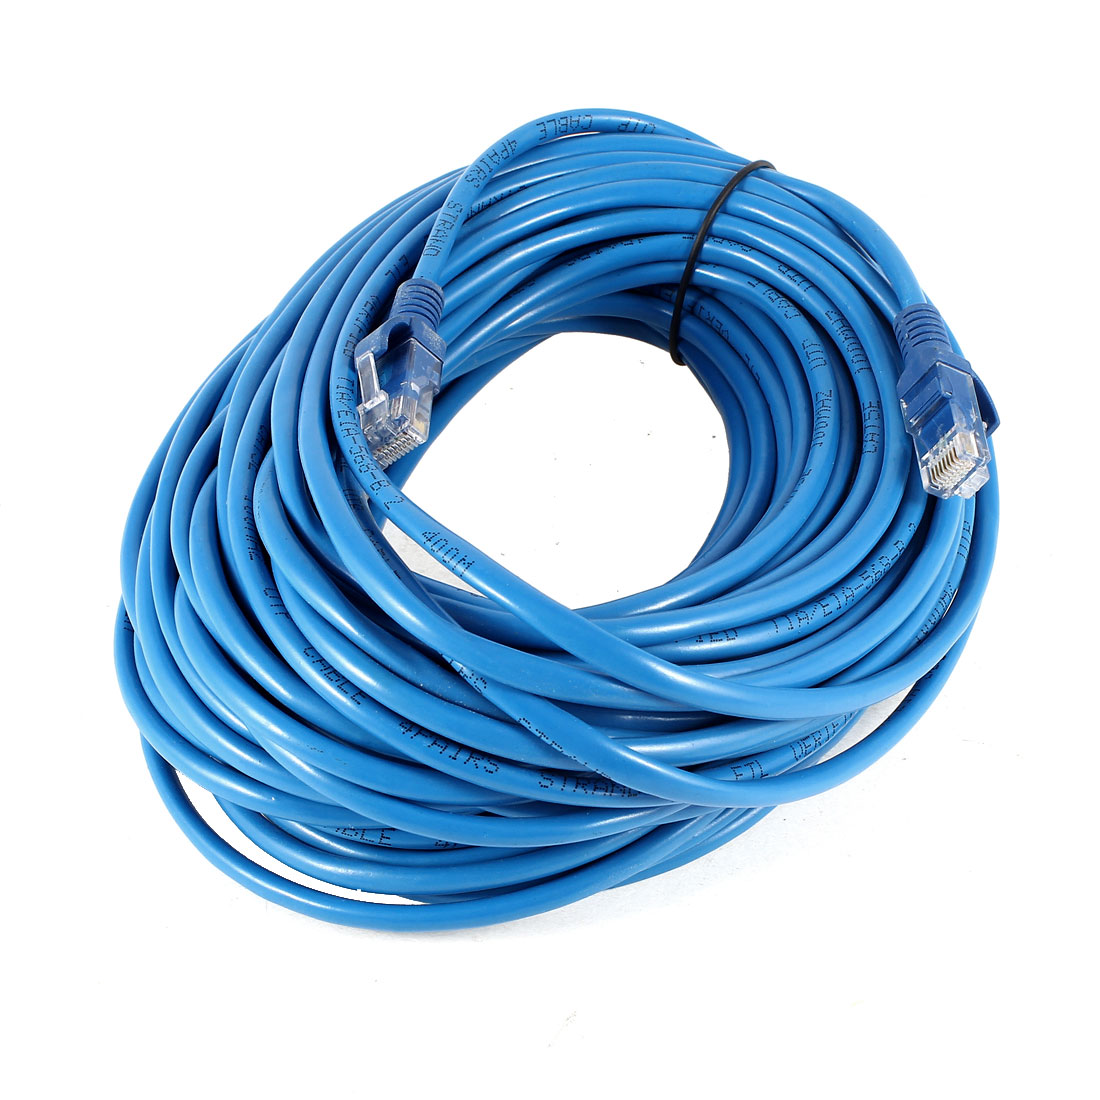 Unique Bargains Blue RJ45 8P8C Male to Male Connector Ethernet LAN Network Round Cable Lead 25M